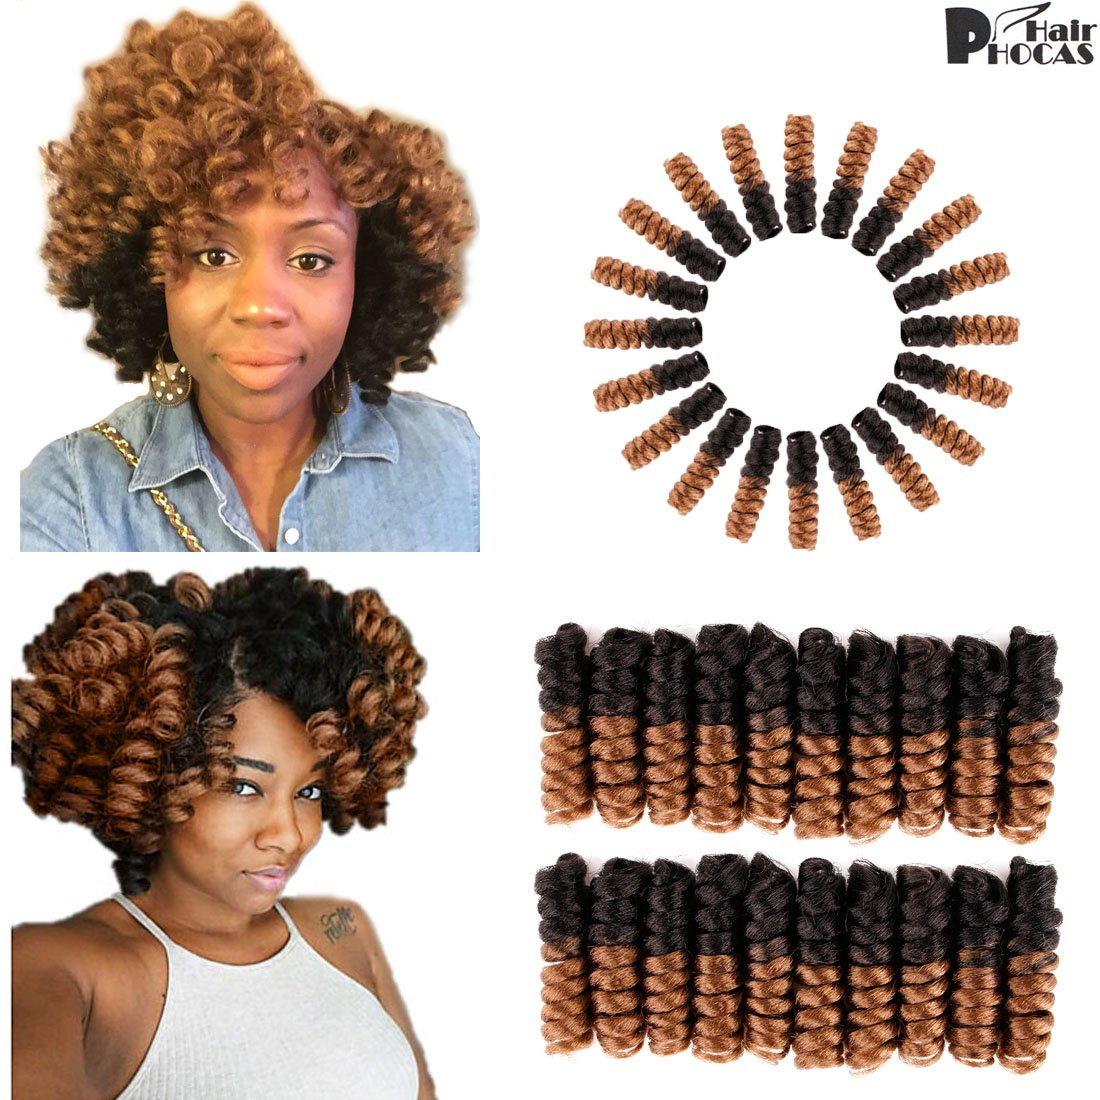 Amazon.com : HairPhocas 5 Packs Kenzie Curly African Wand Braided ...